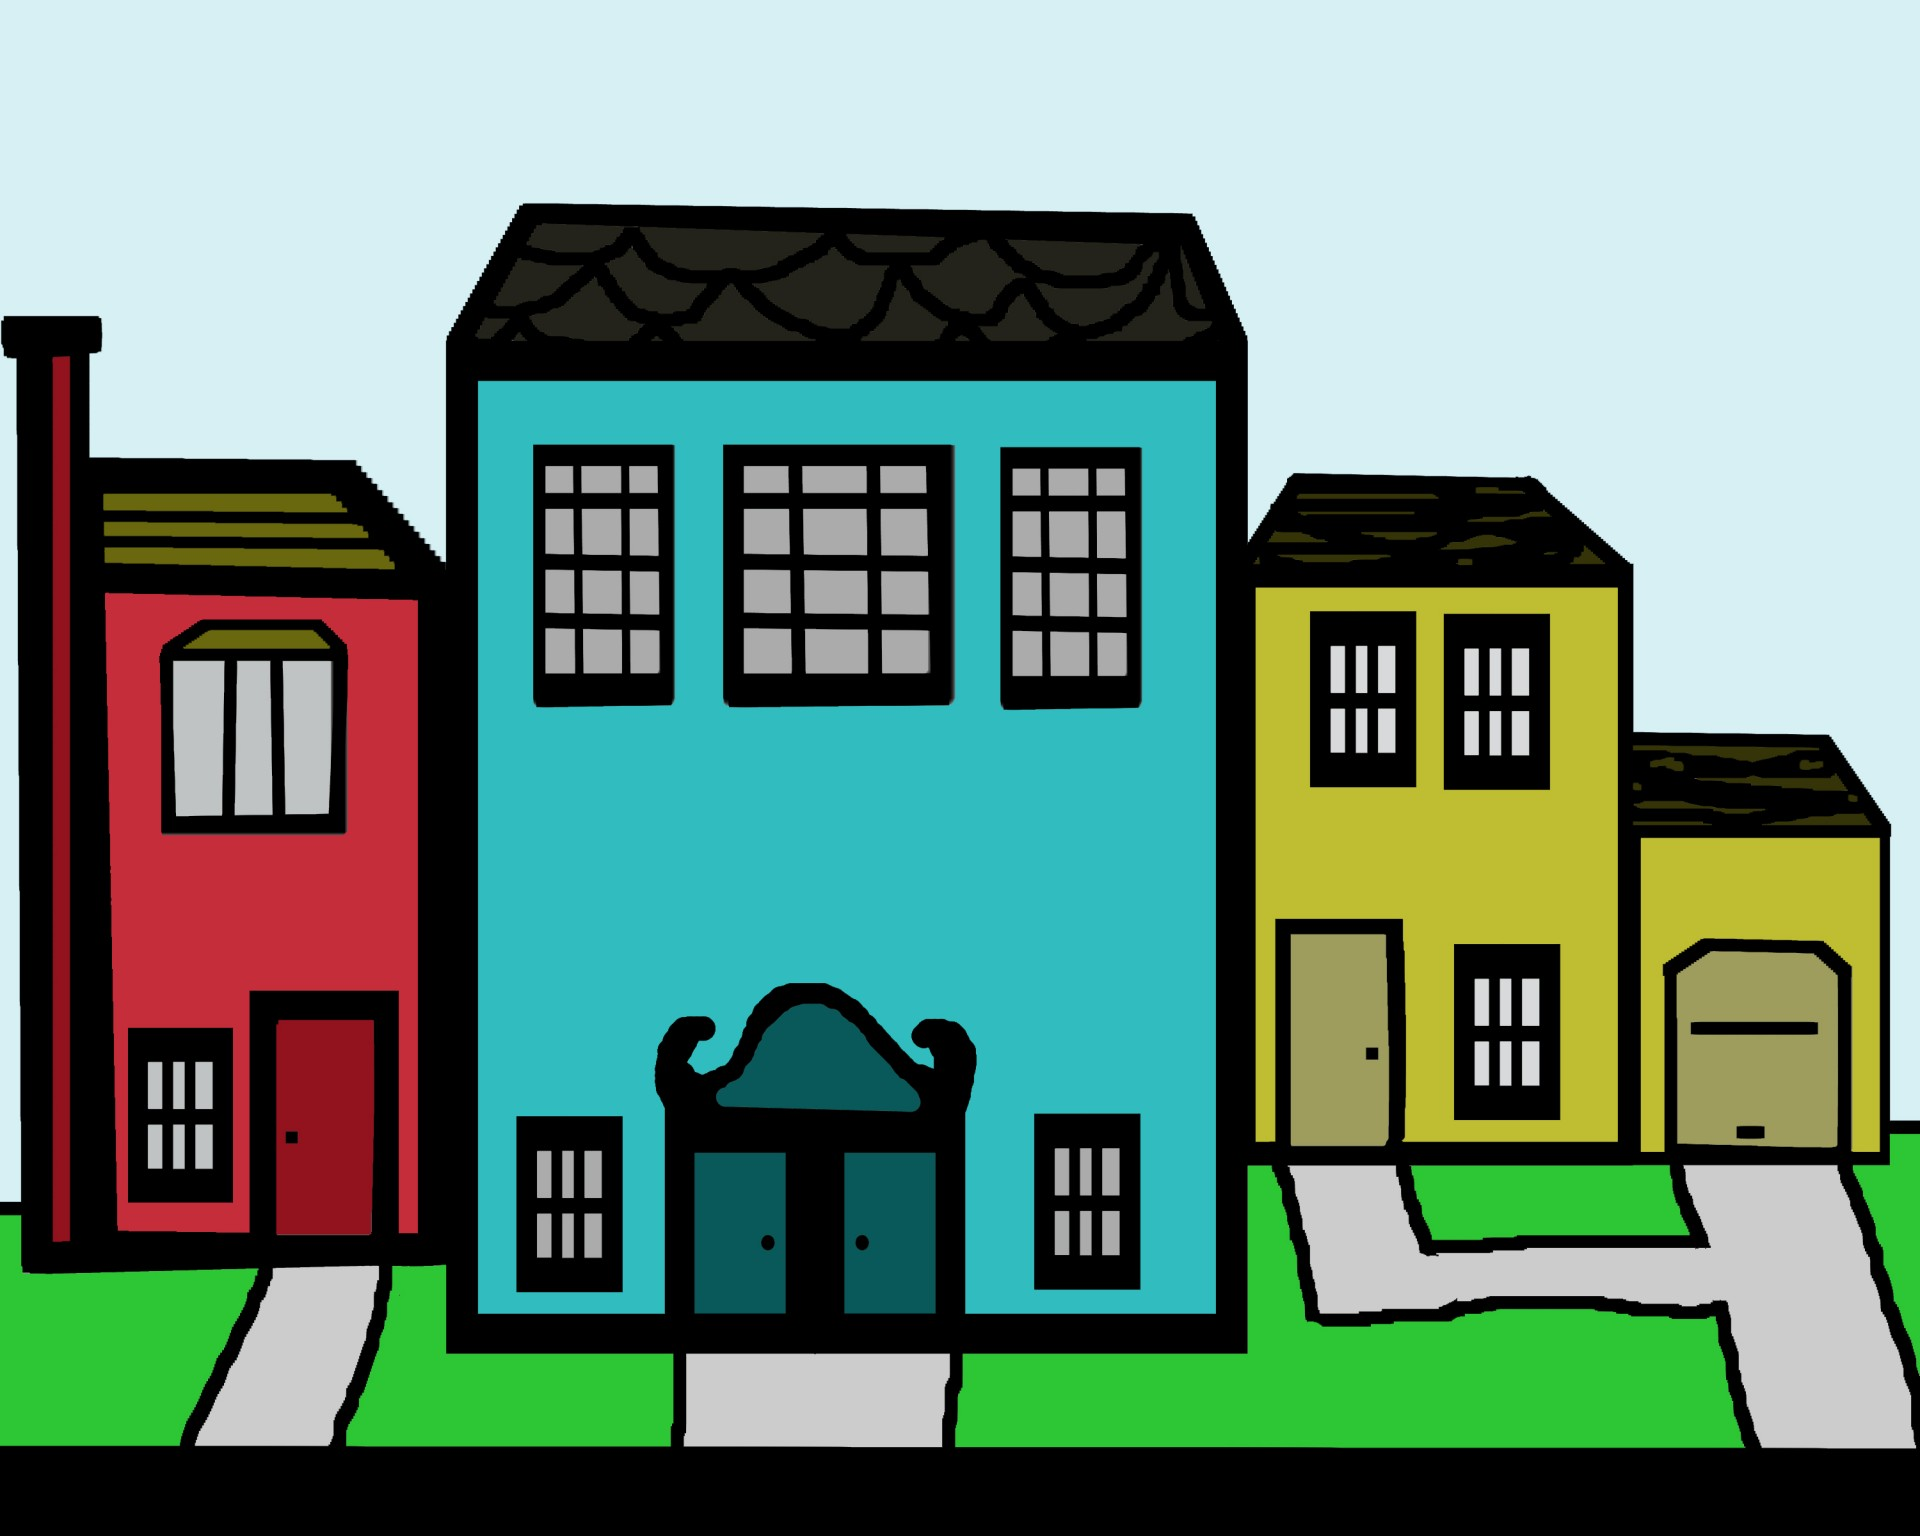 Clip Art Neighborhood Free Stock Photo.